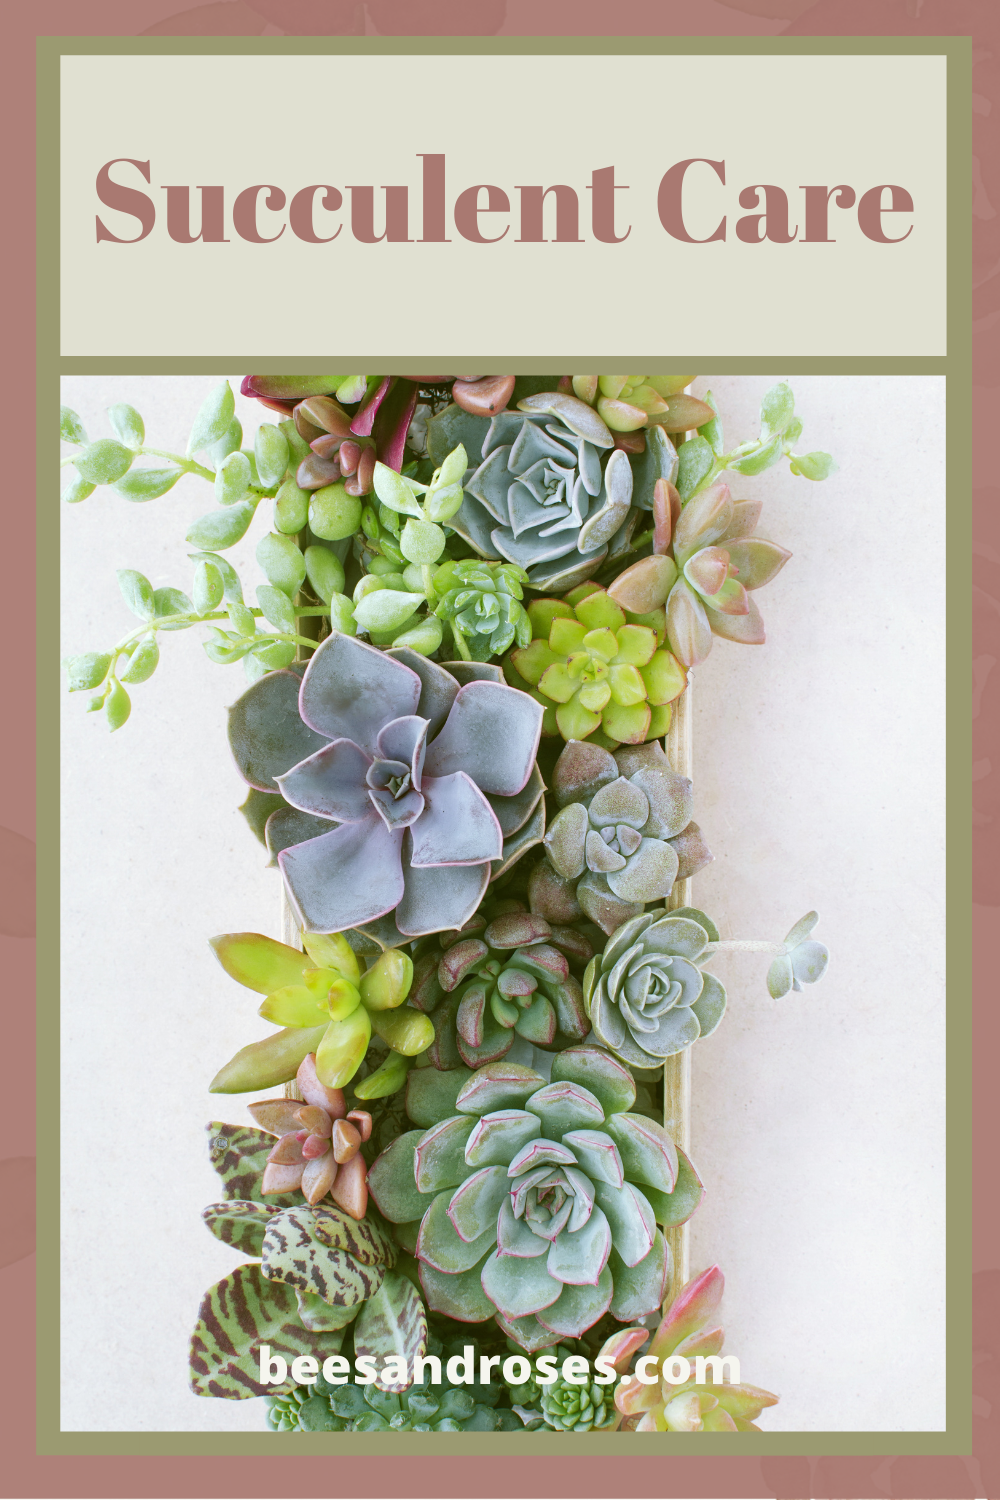 Whether indoor or outside, succulents need special care. Learn the dos and don'ts and how you can care for your succulents with ease. Read the post to learn succulent care tips. #beesandrosesblog #succulents #succulentcare